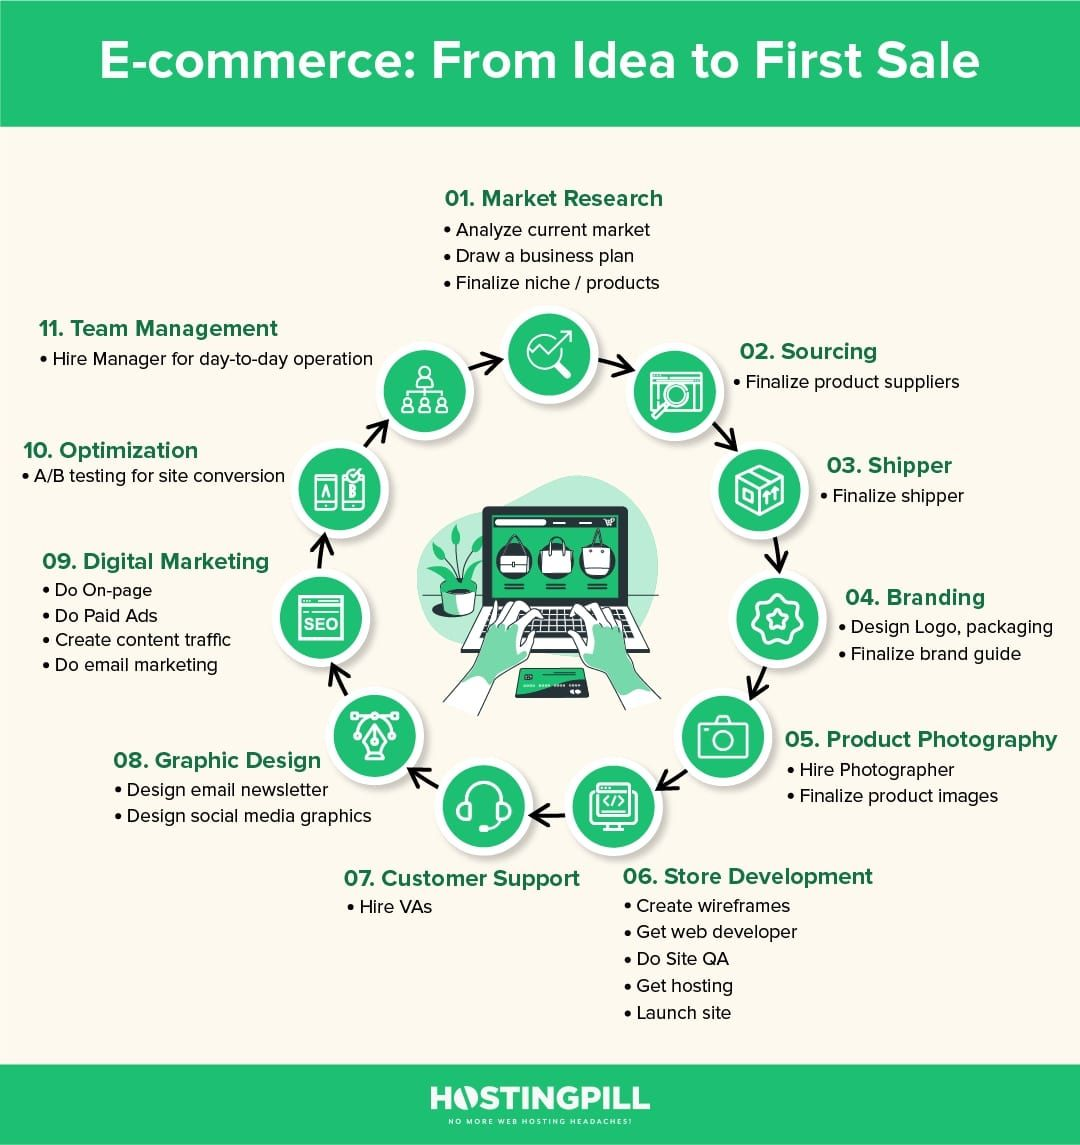 E-commerce From Idea to First Sale